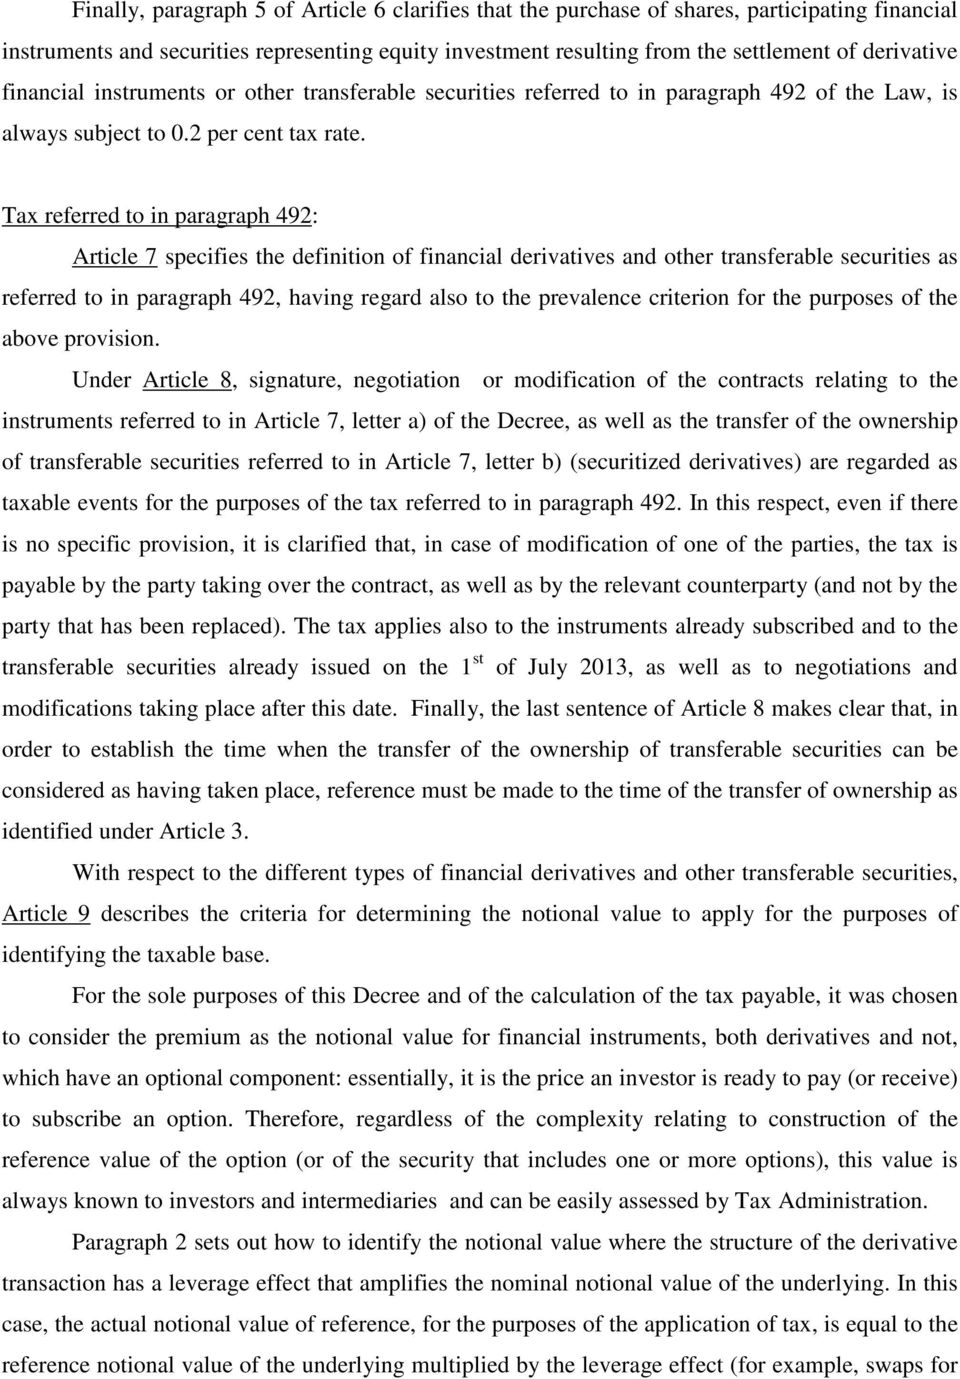 Tax referred to in paragraph 492: Article 7 specifies the definition of financial derivatives and other transferable securities as referred to in paragraph 492, having regard also to the prevalence